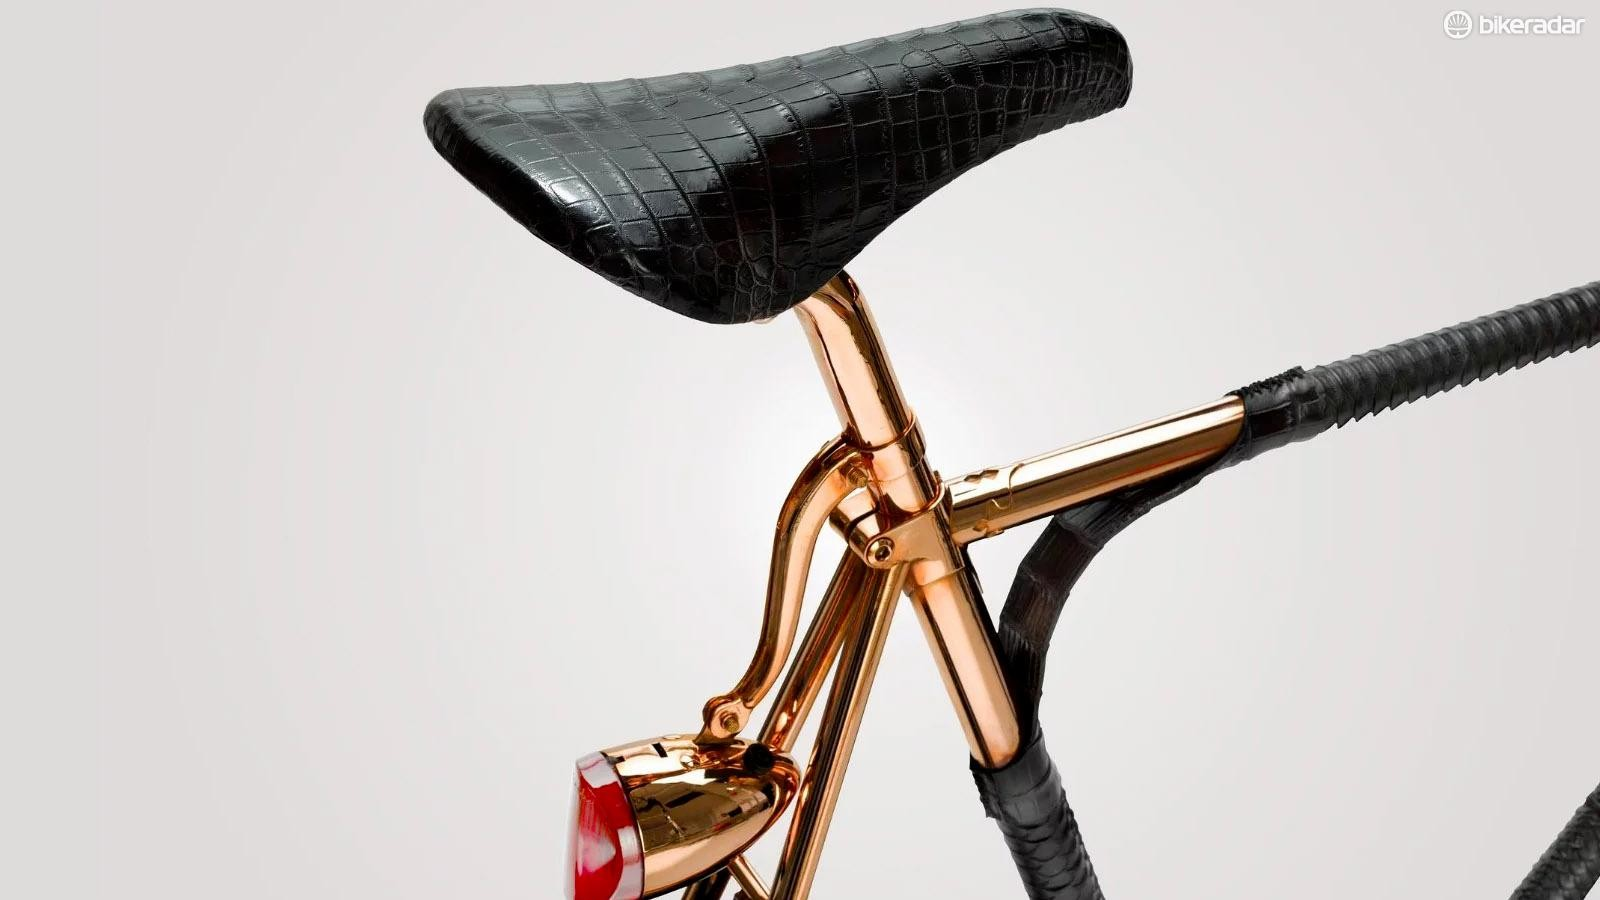 Williamson Goods has taken an already fancy Brooks saddle and made it Scrooge McDuck fancy